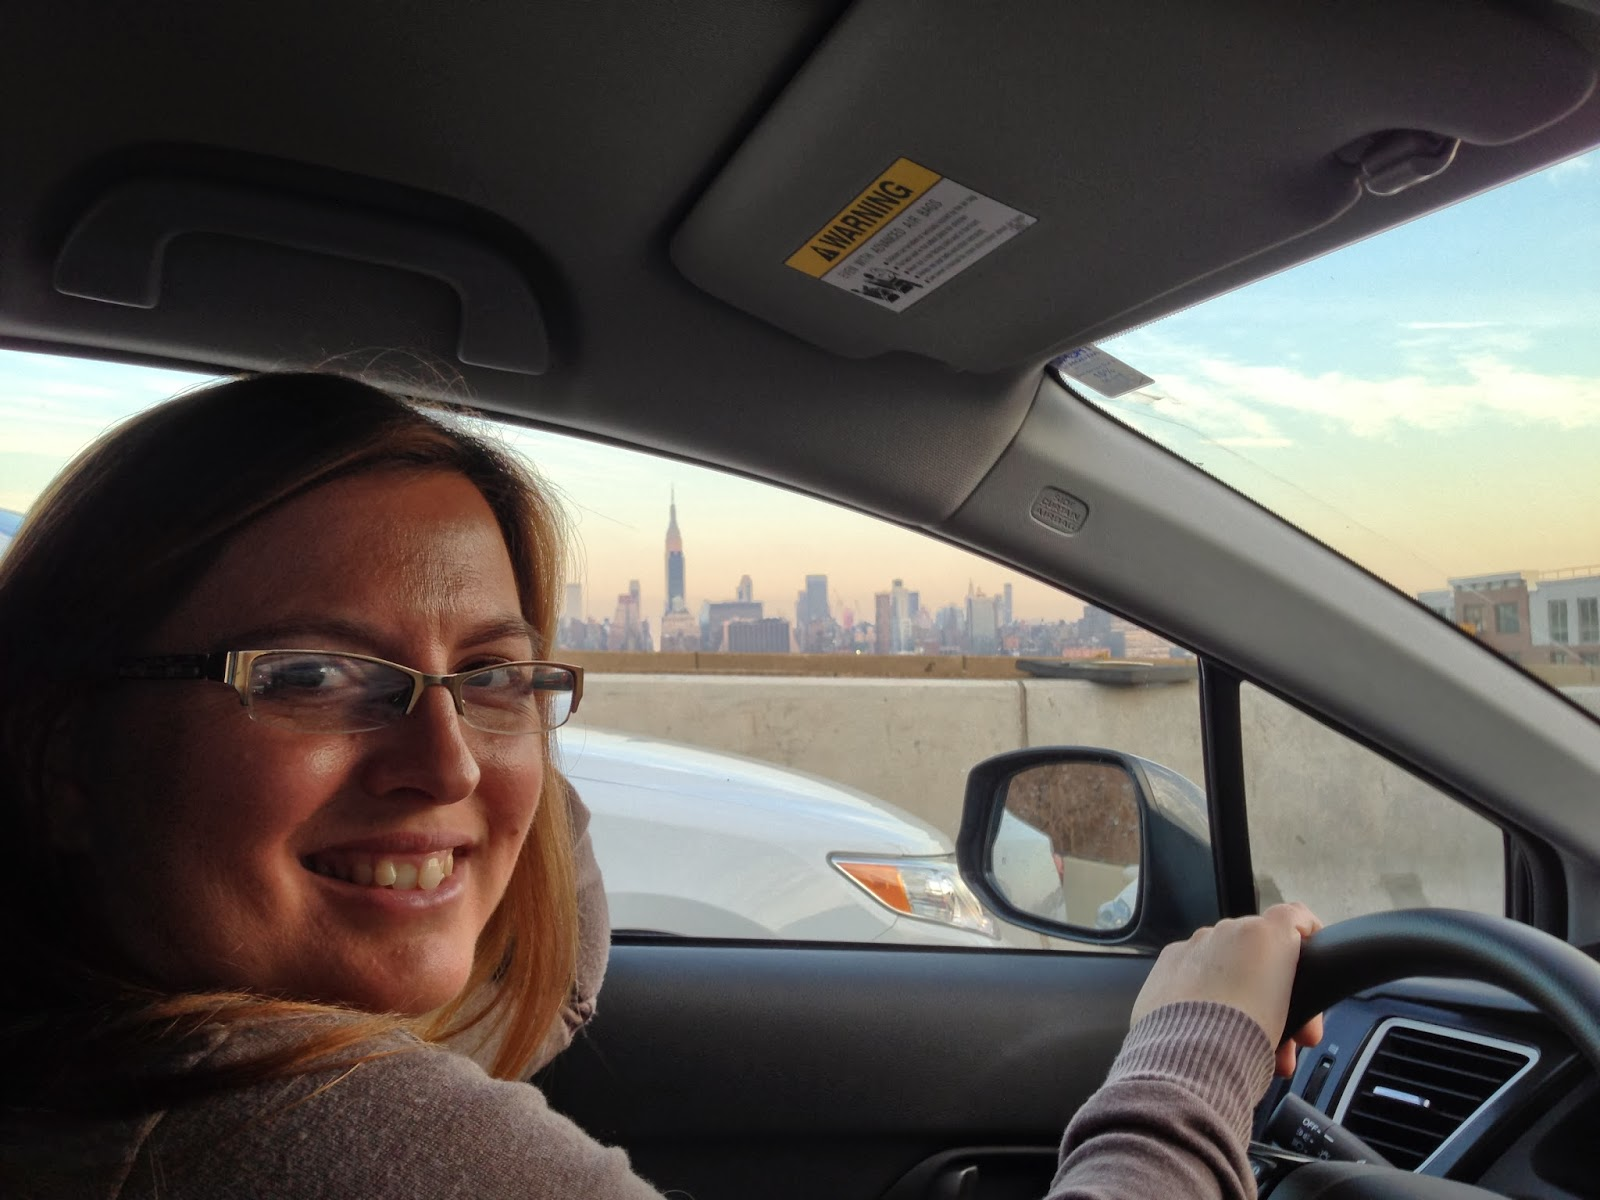 smiling woman, new york city skyline